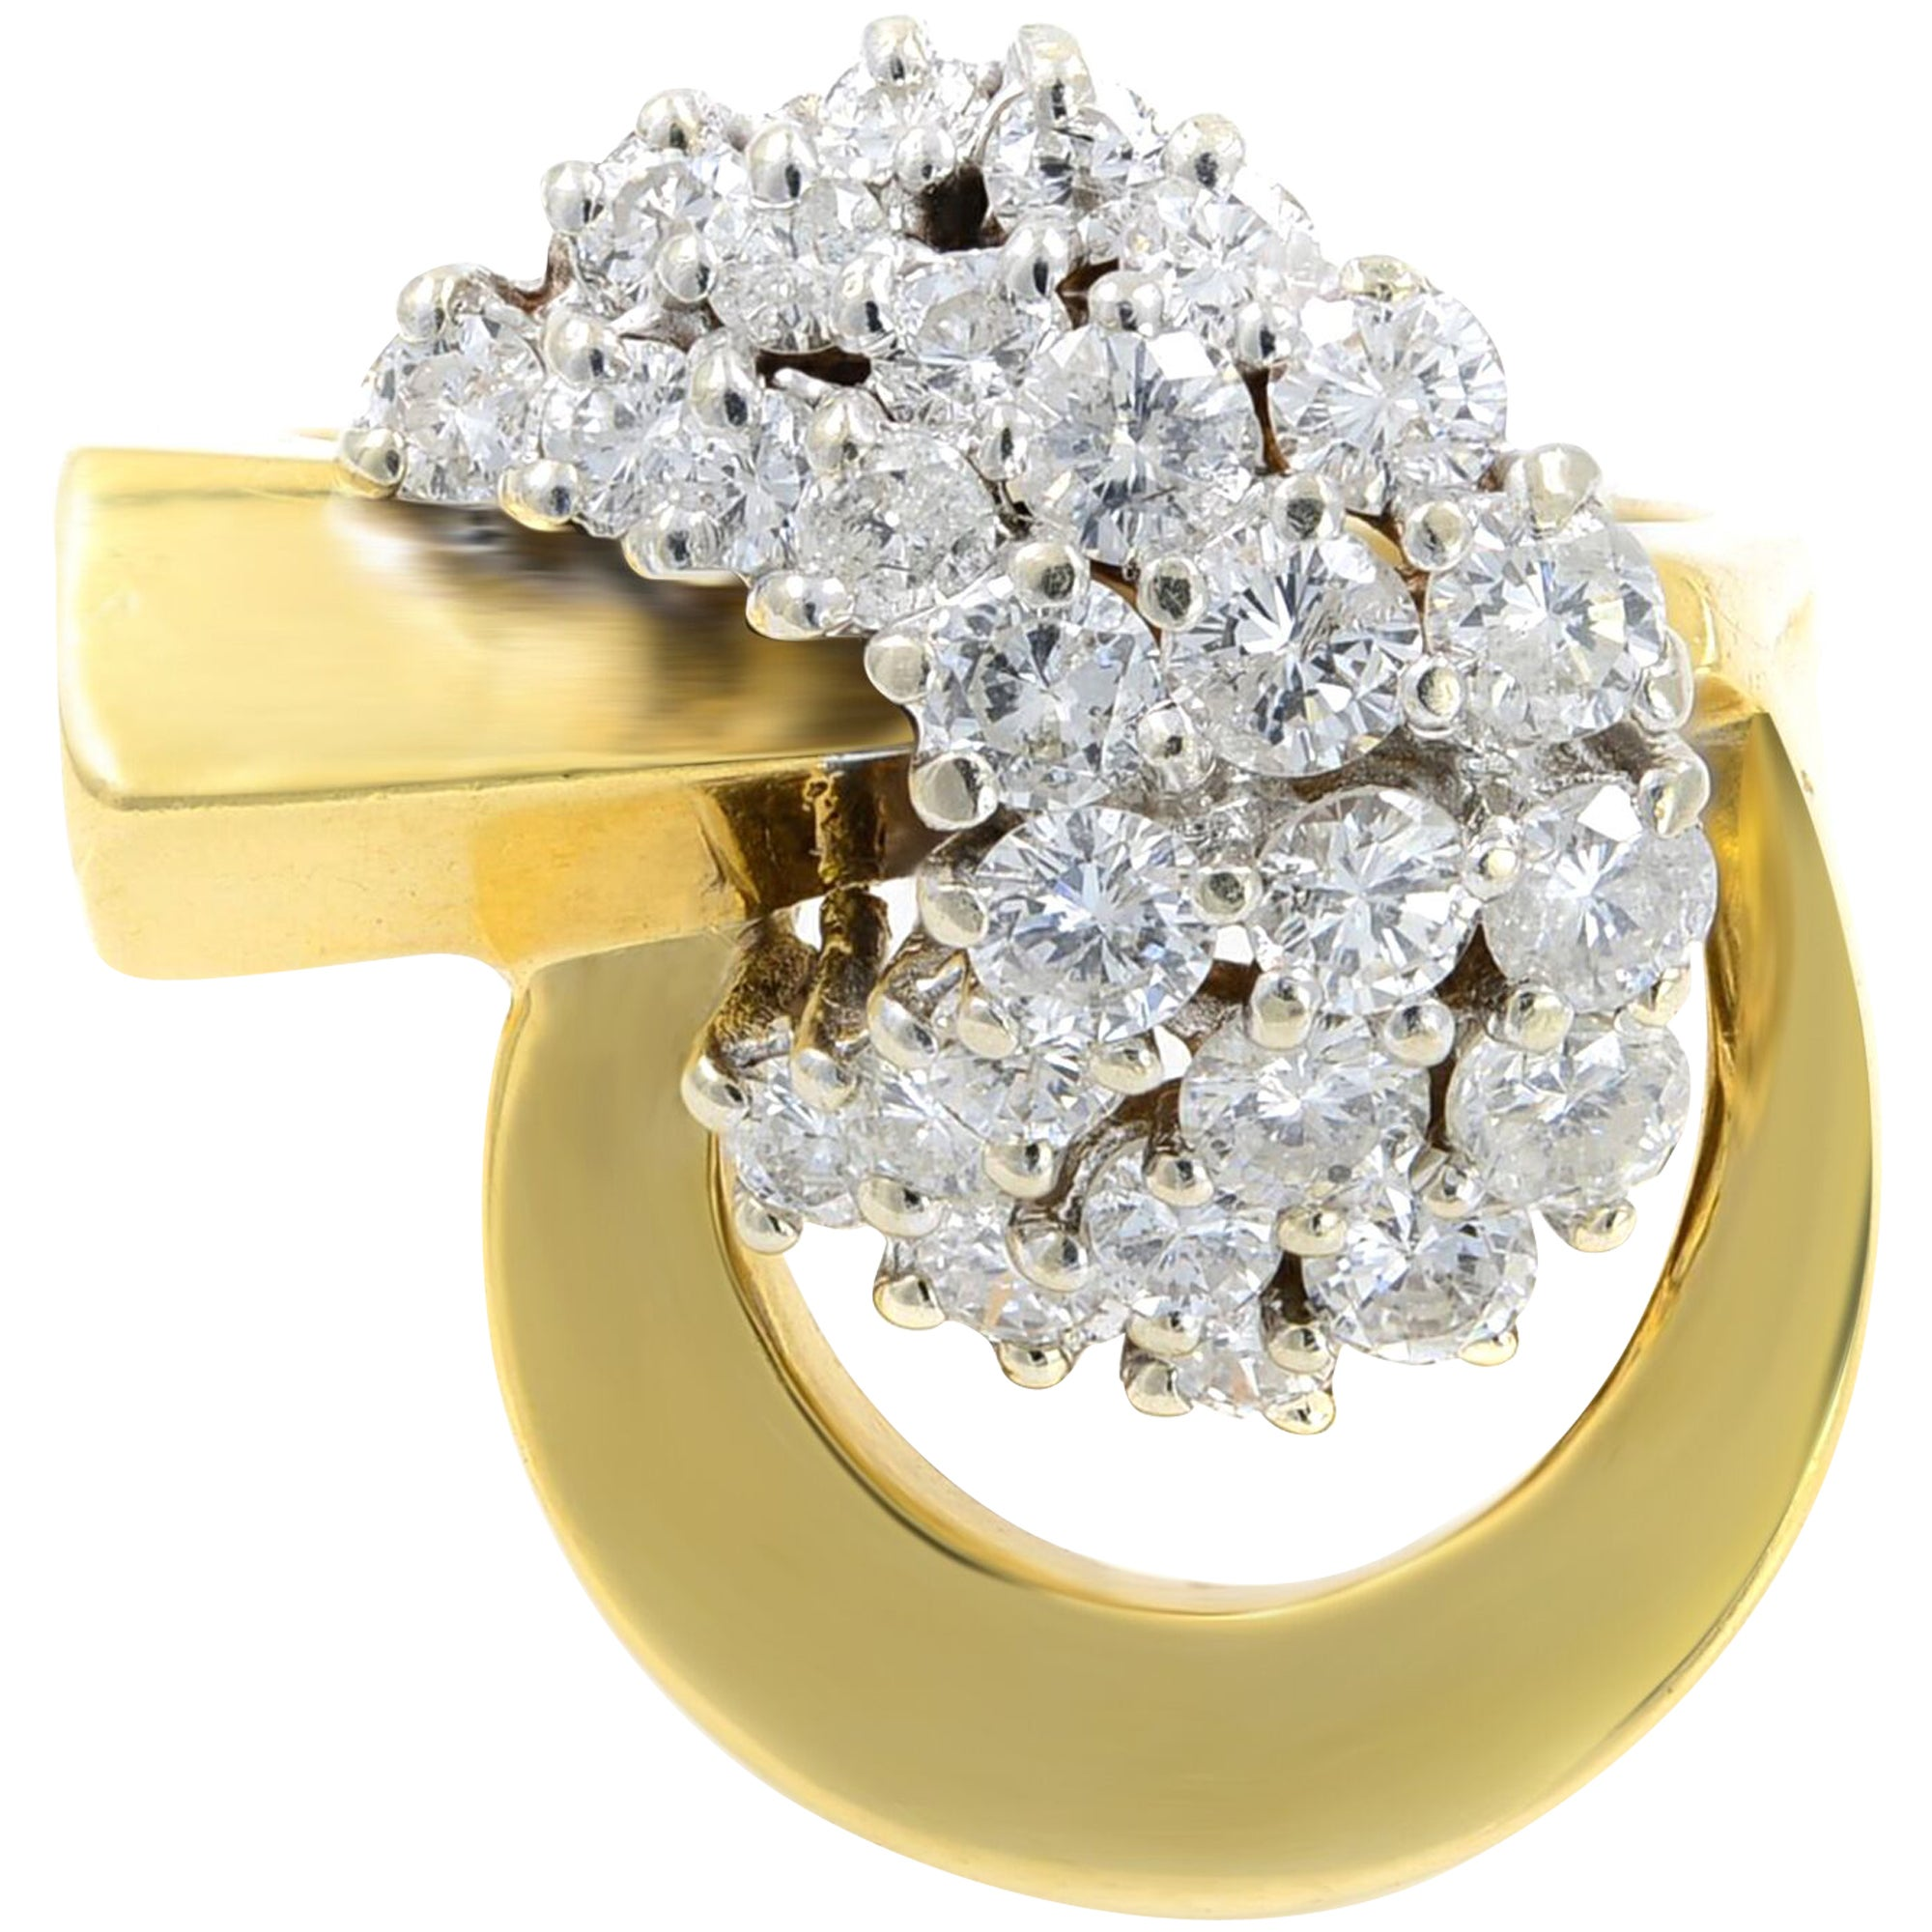 18 Karat Yellow Gold Diamond 1.65 Carat Ring